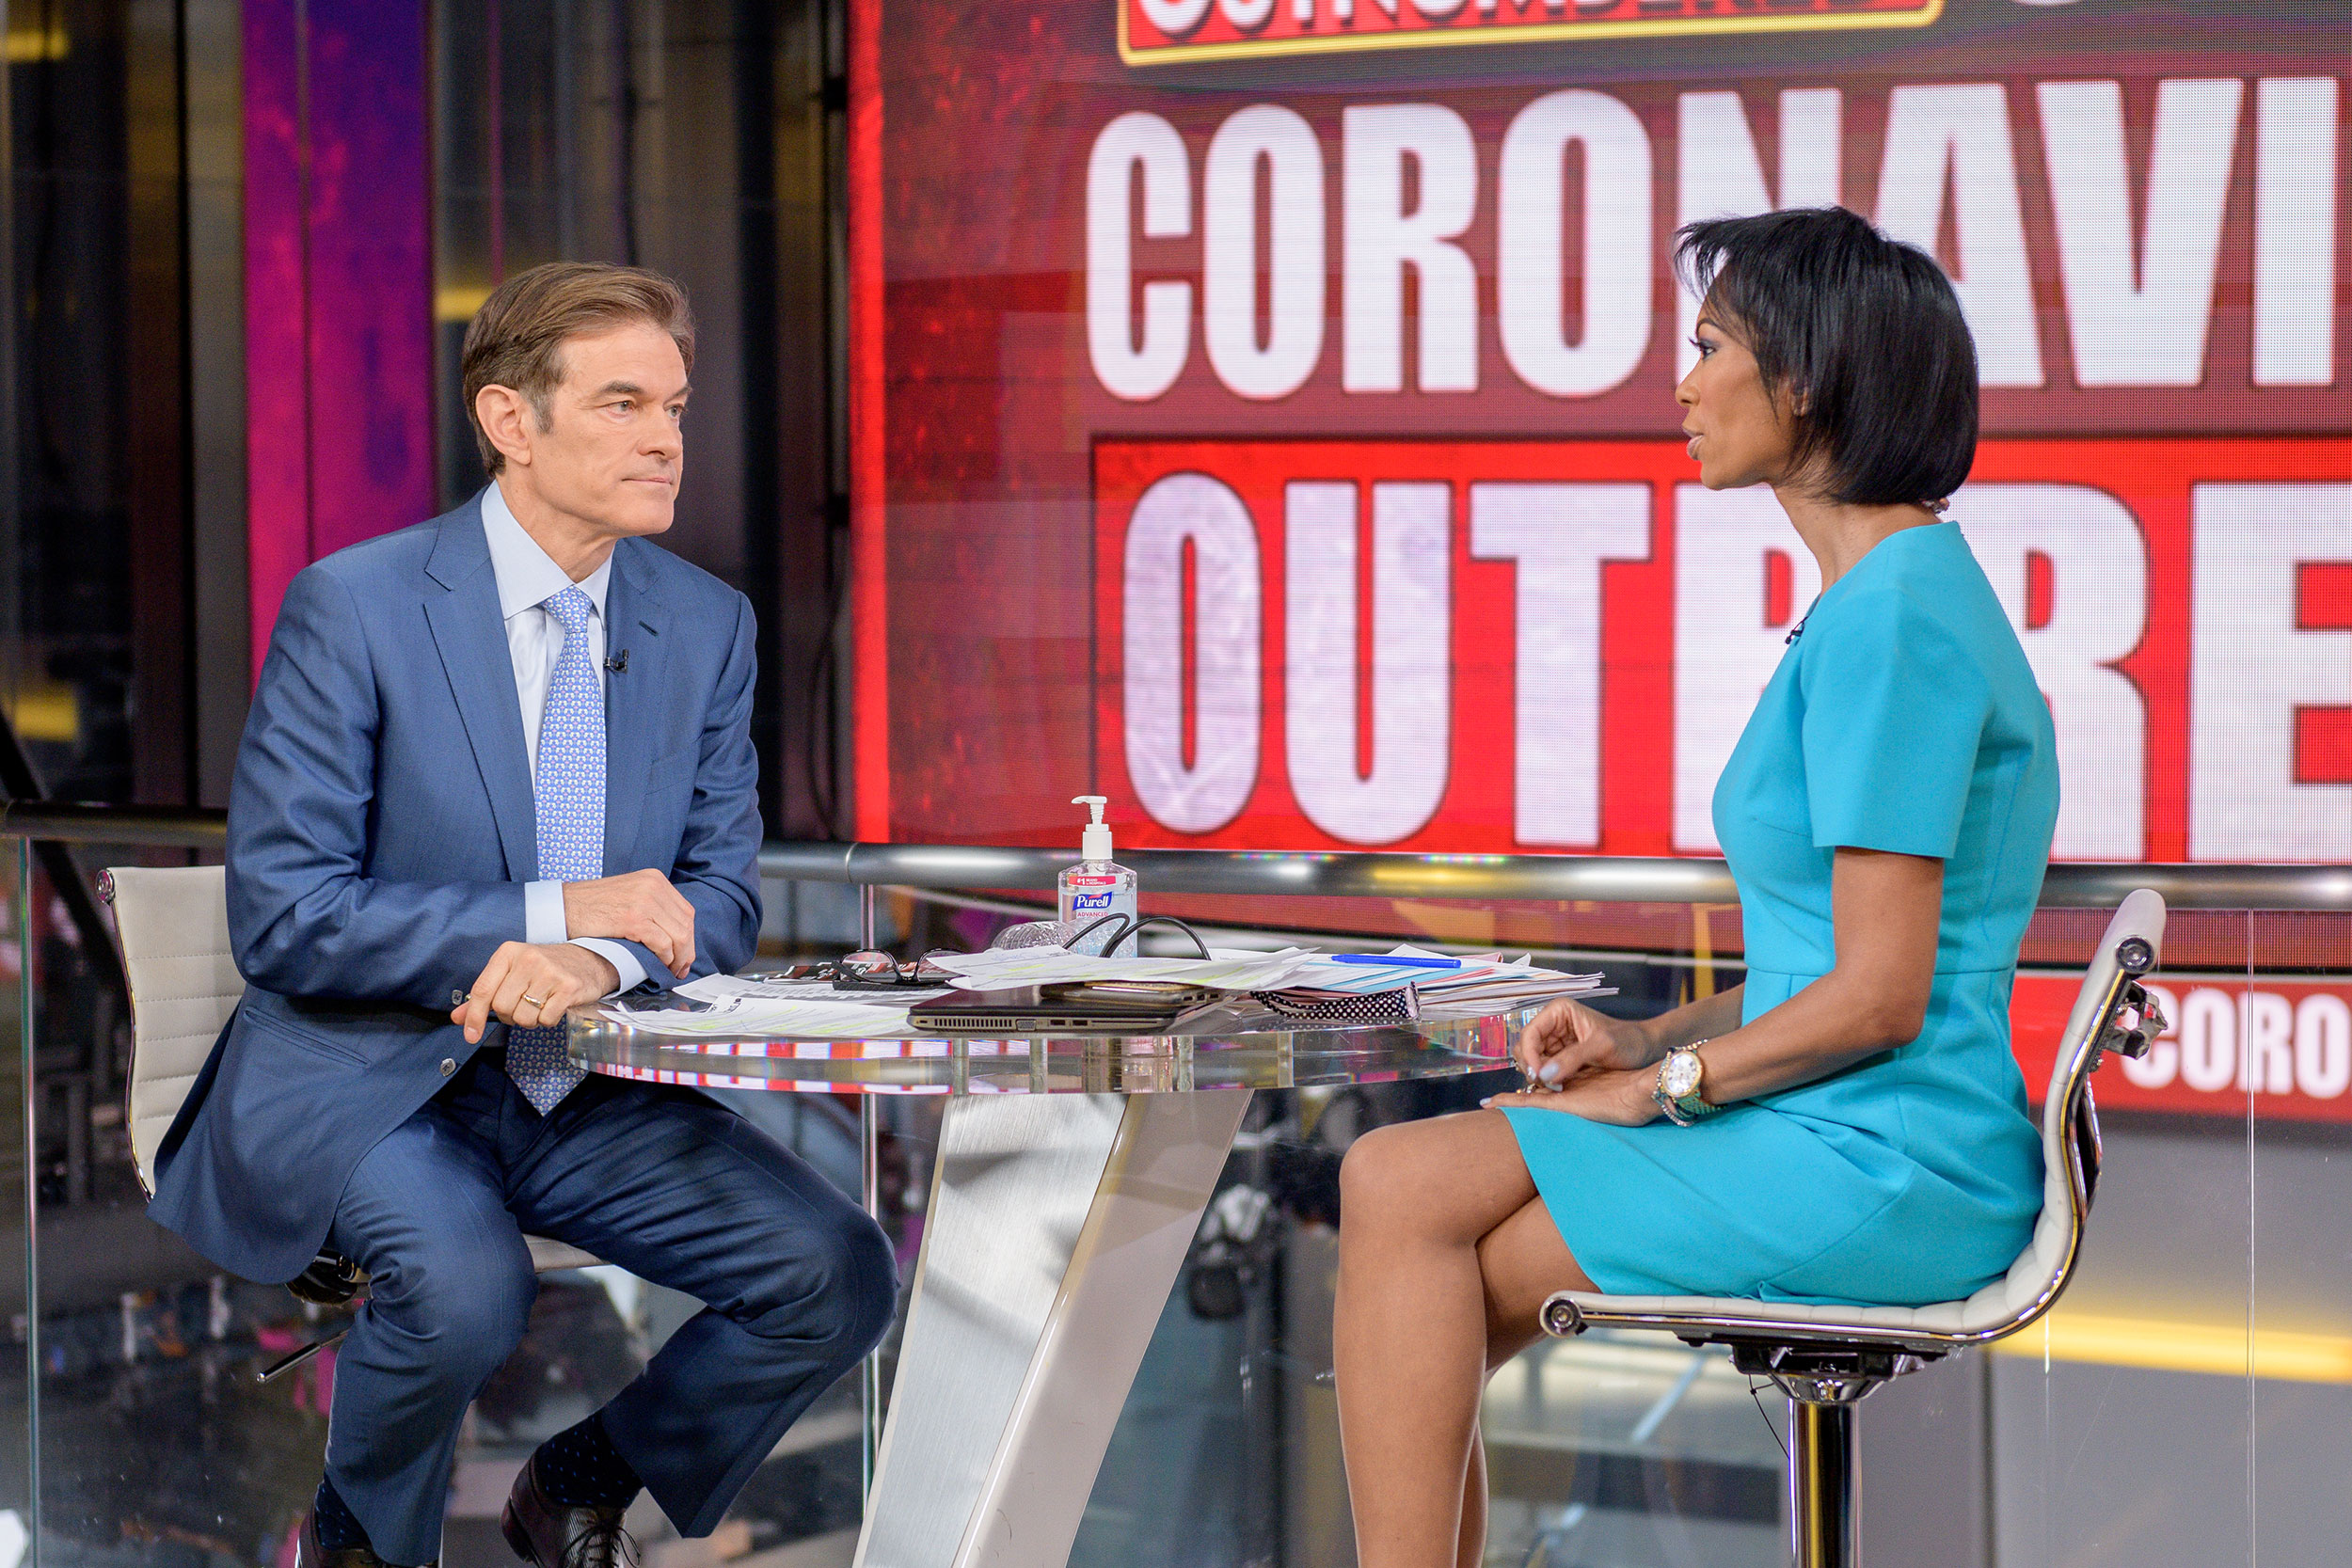 Dr. Oz catches Trump's attention as he pushes unproven drug to fight coronavirus